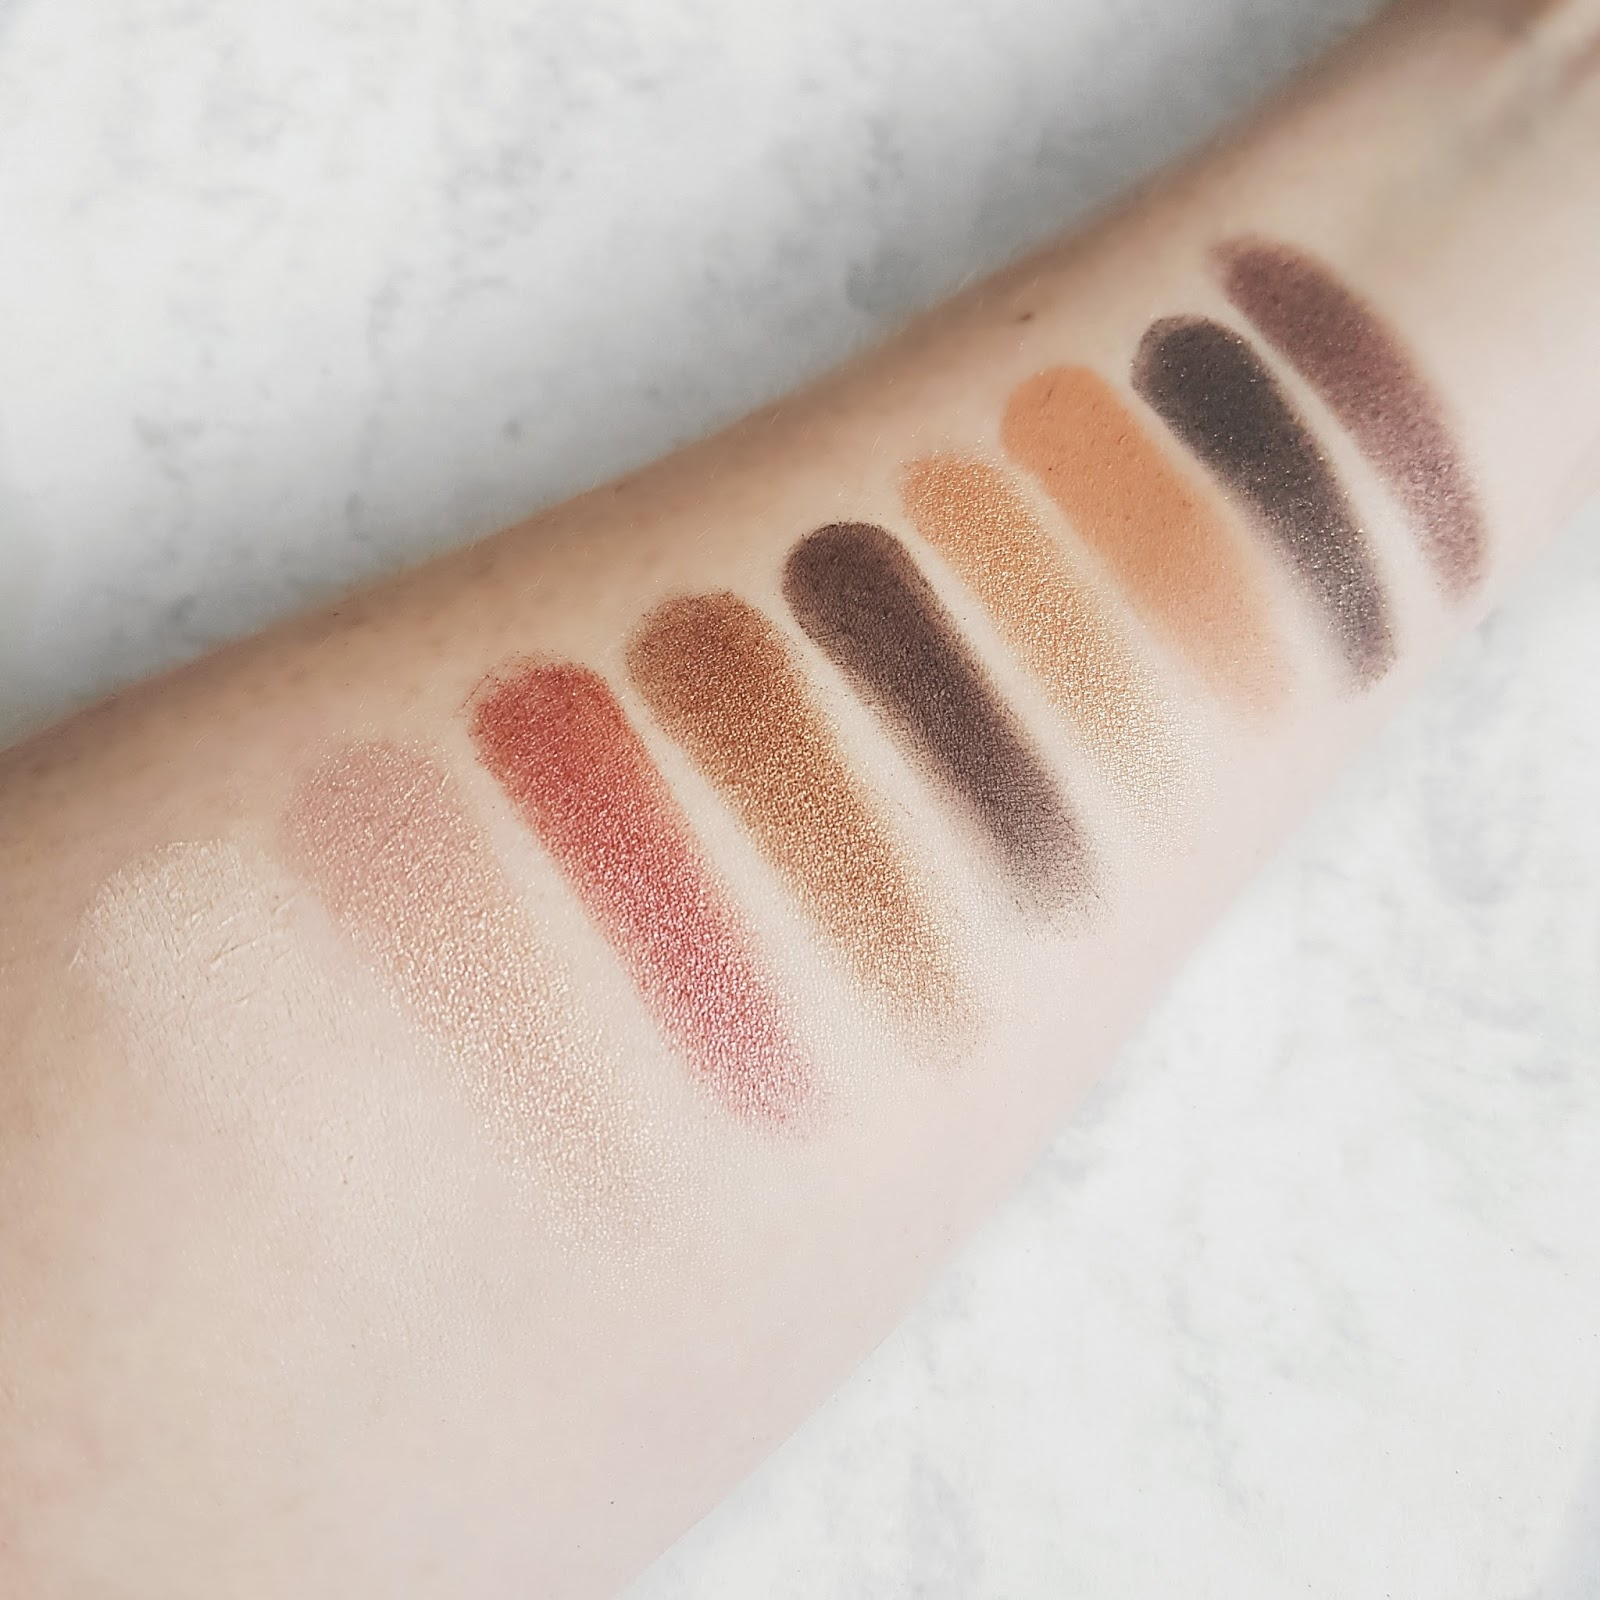 Swatches of the Zoeva cocoa blend eyeshadow palette